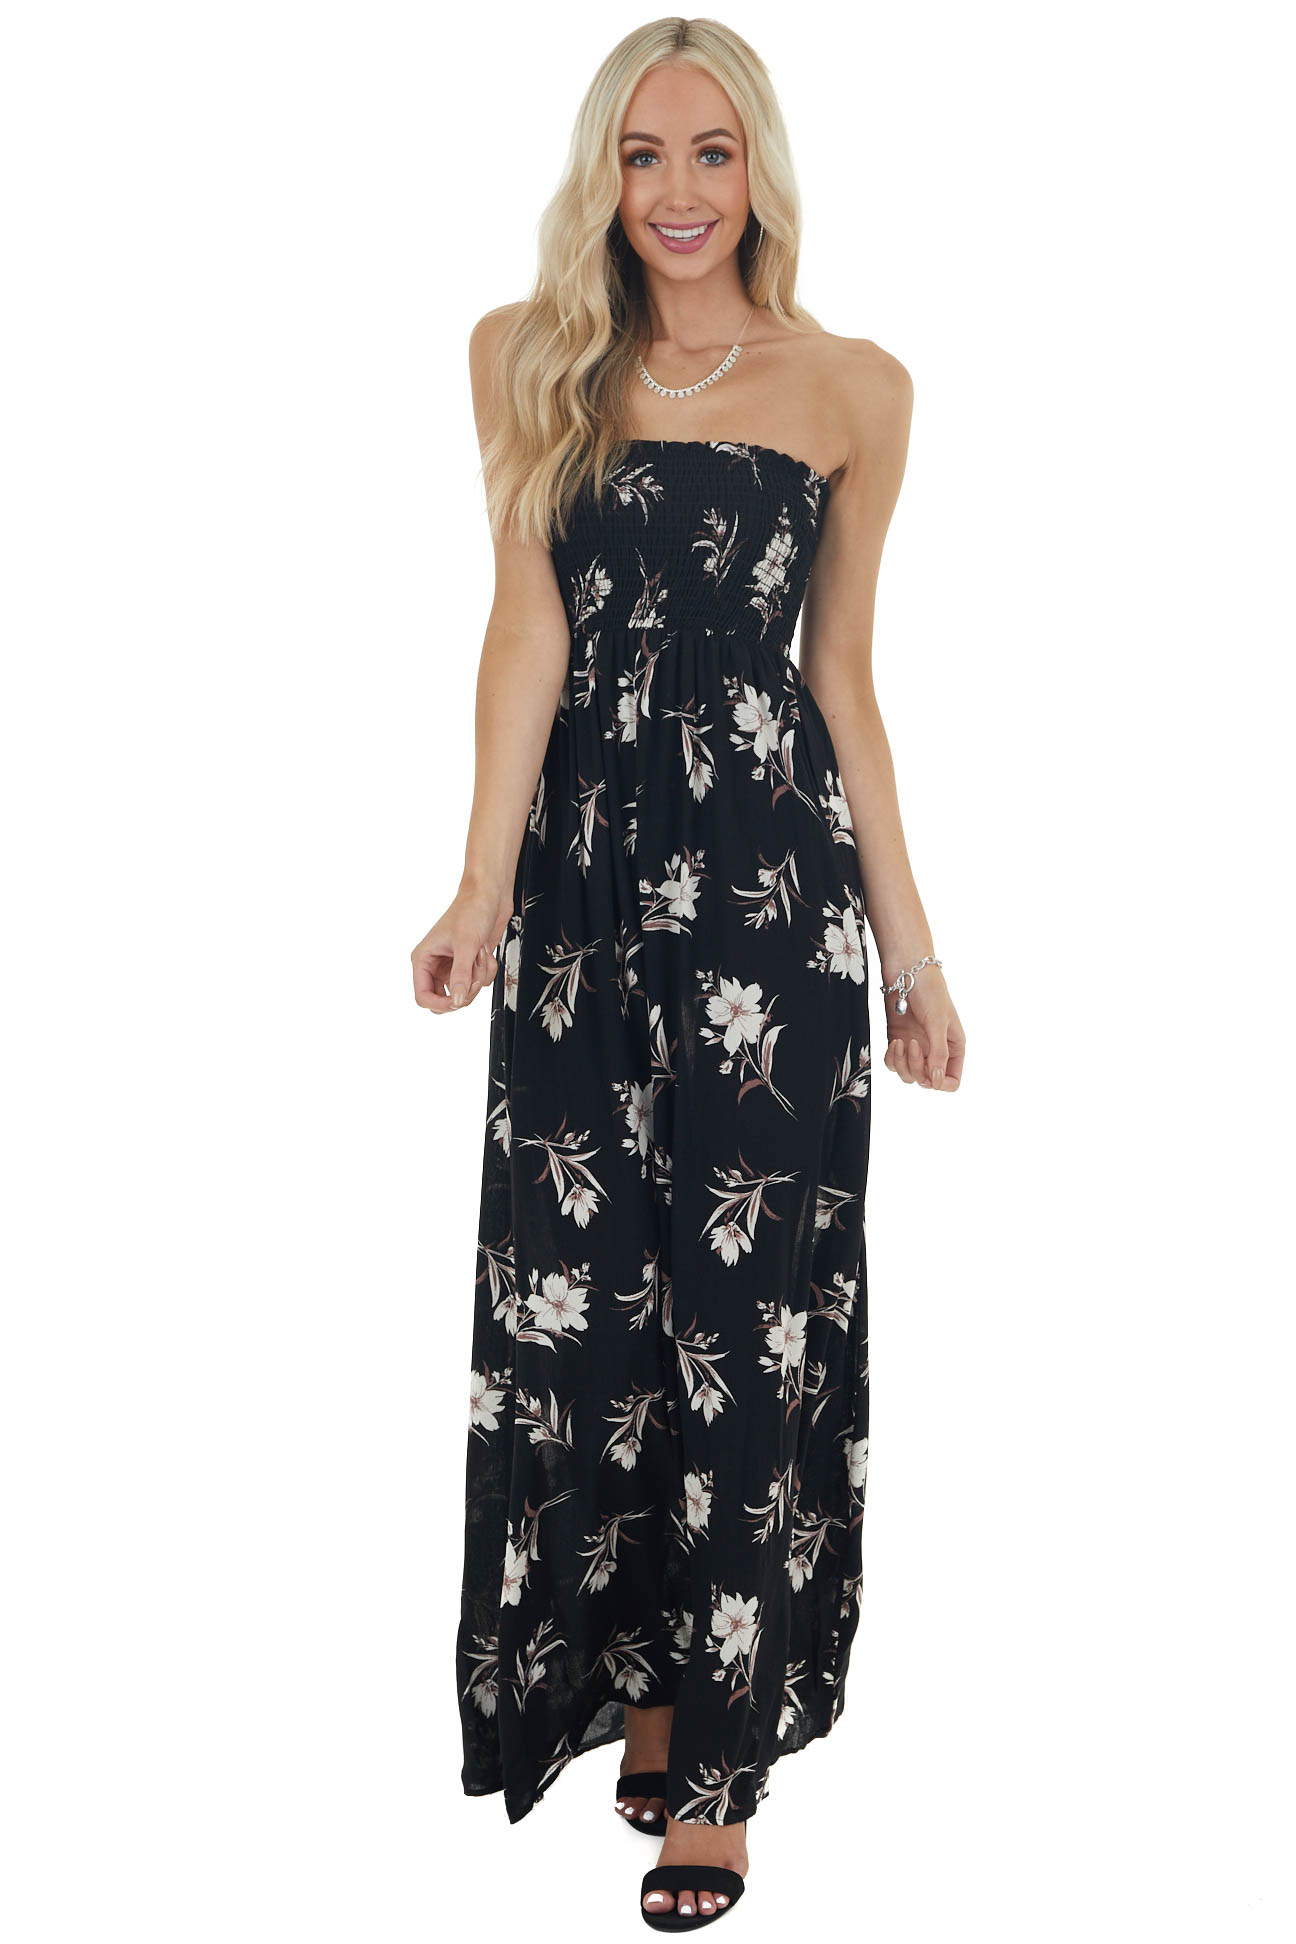 Black and Ivory Floral Print Maxi Dress with Smocked Bodice